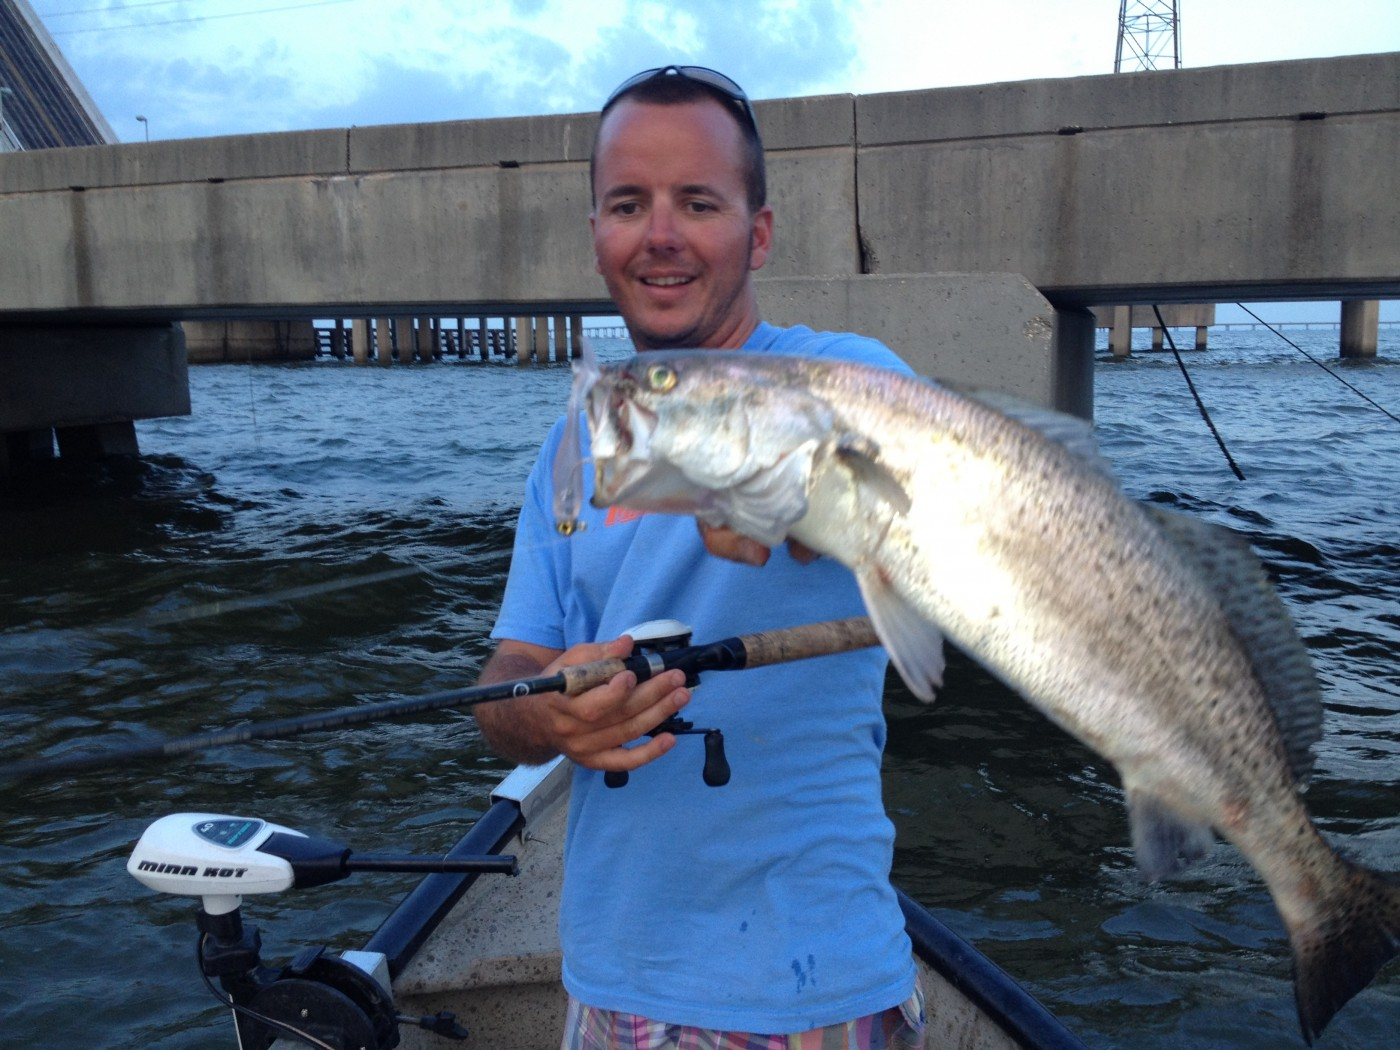 speckled trout finding lake pontchartrain bridges during